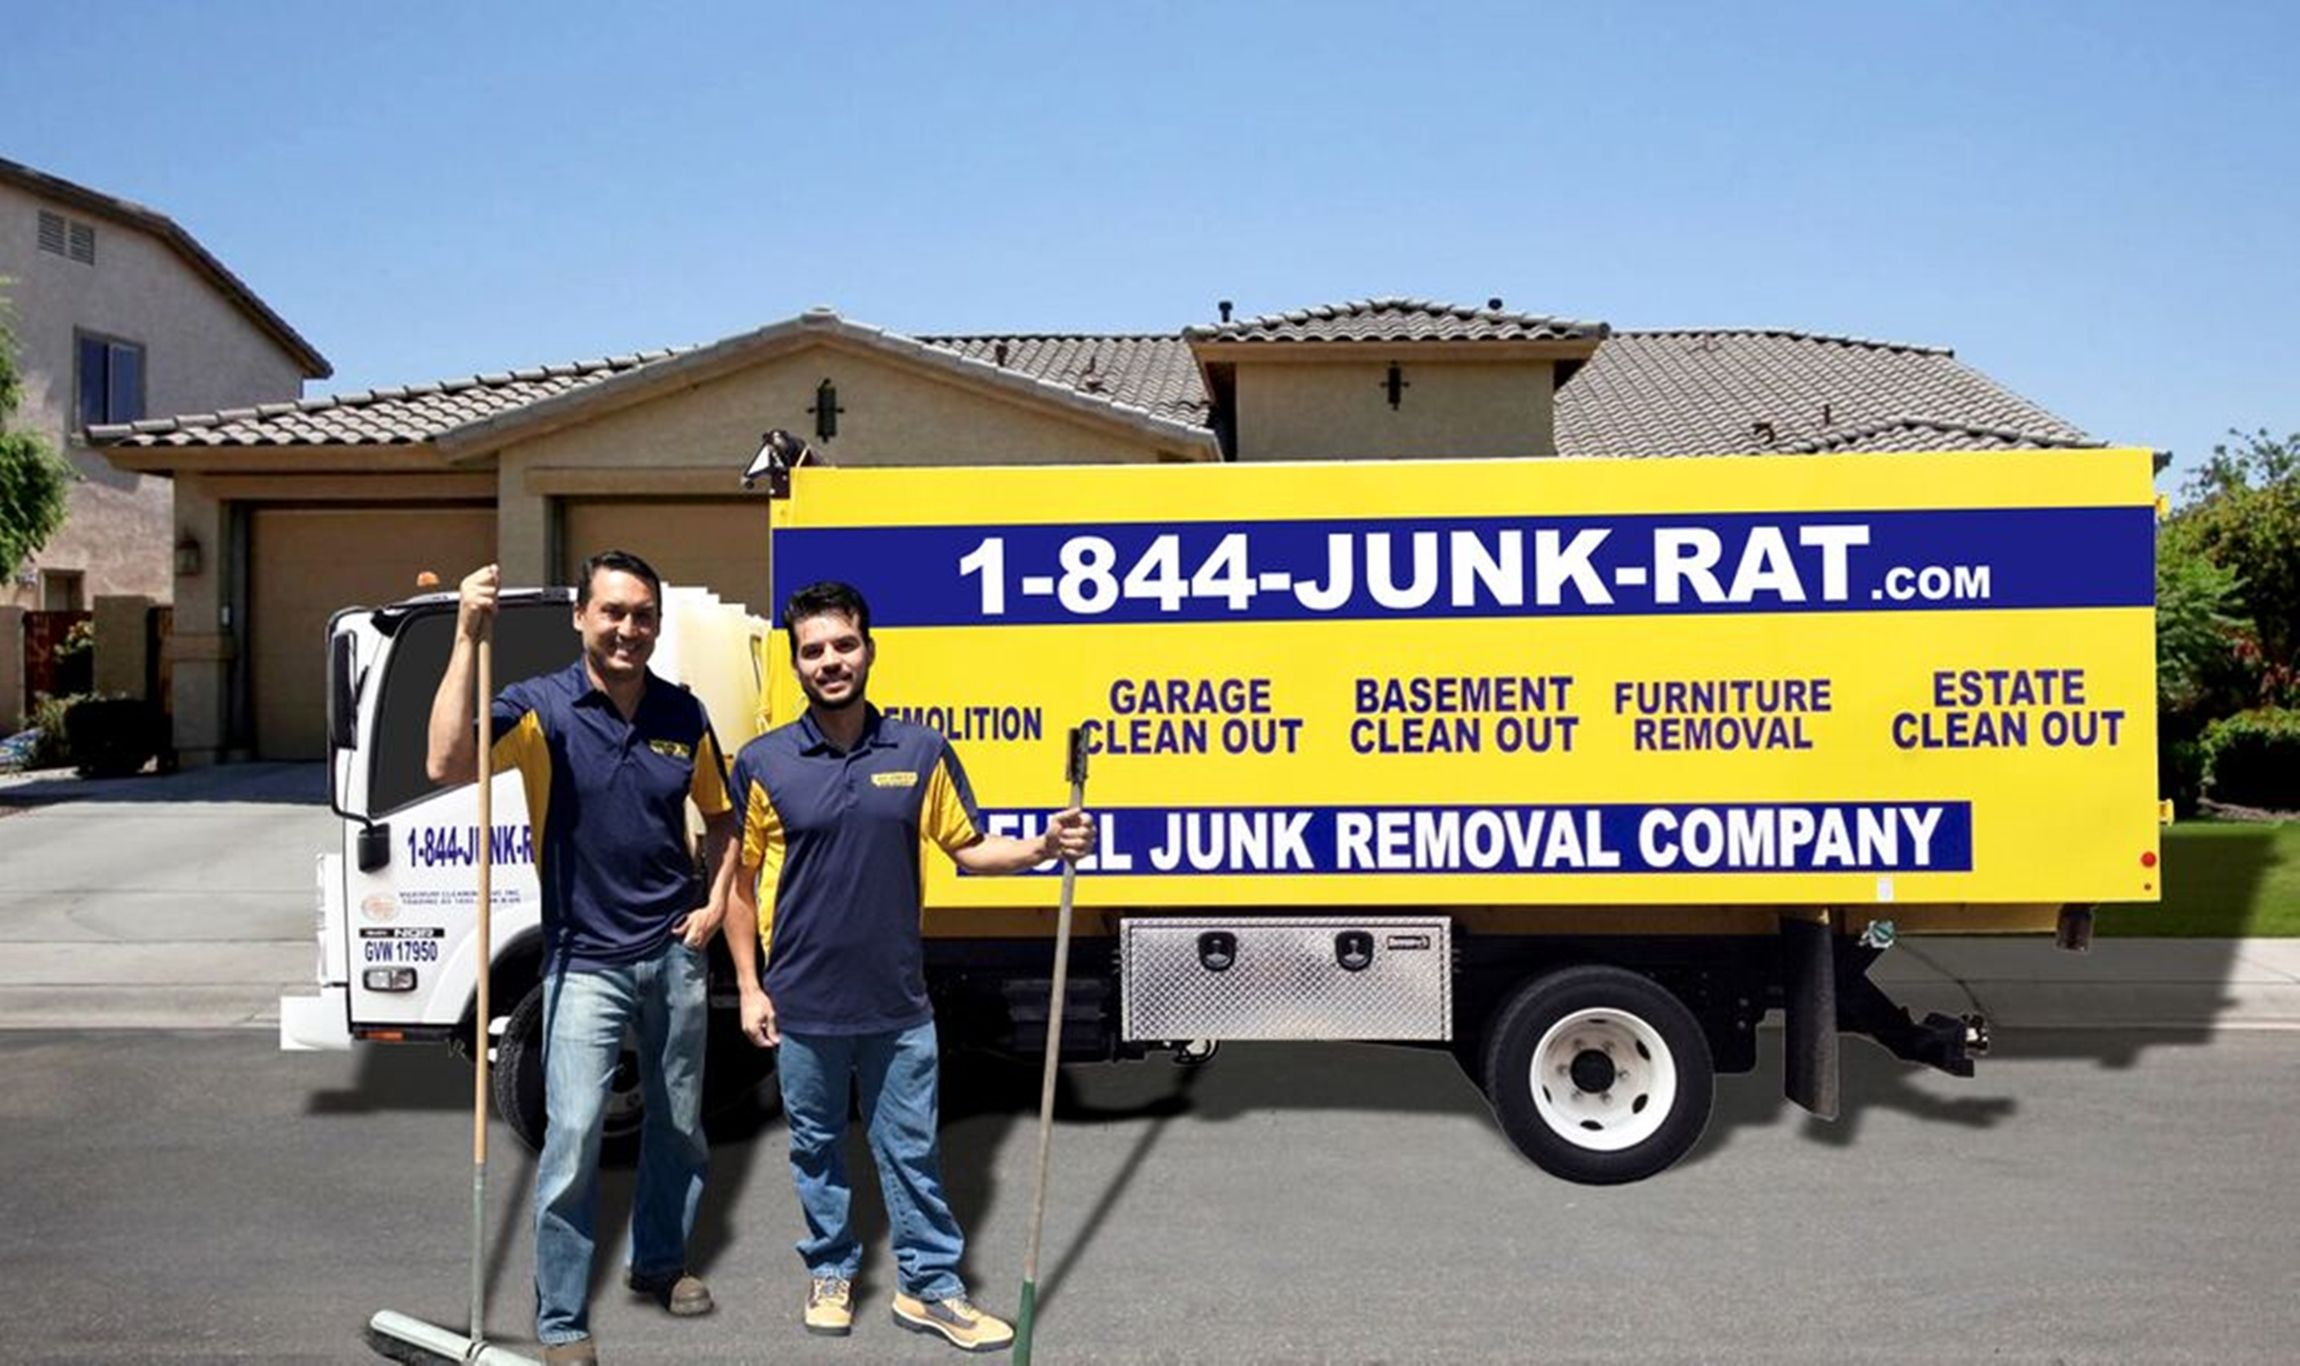 "Our name says it all 1844-JUNK-RAT …""We are the junk people"". We are ..."